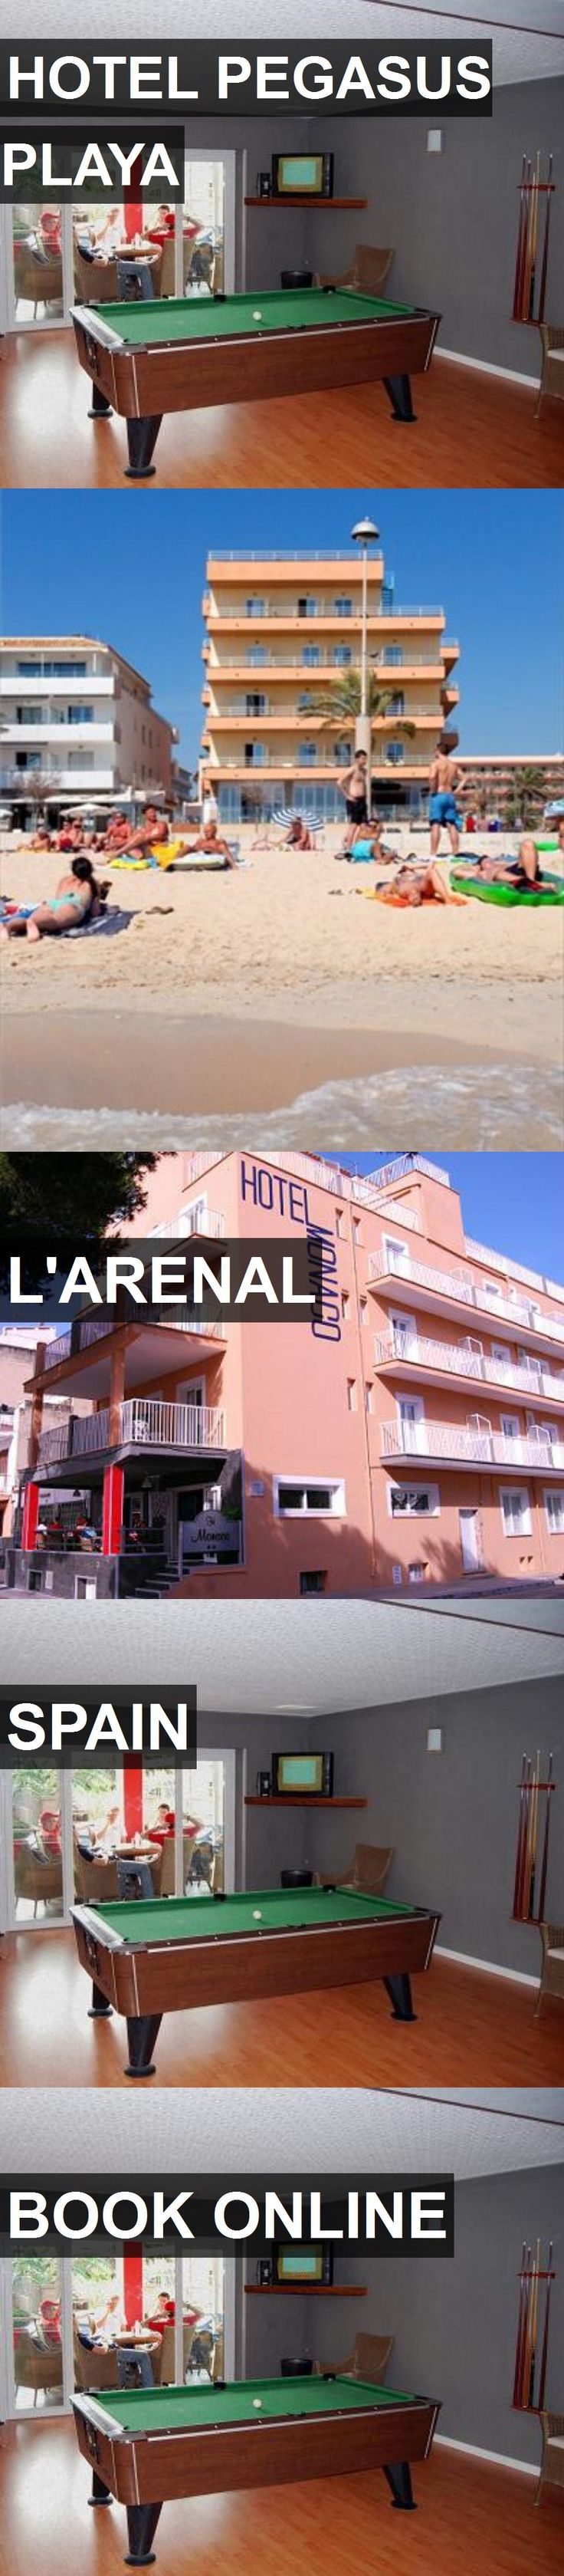 HOTEL PEGASUS PLAYA in L'Arenal, Spain. For more information, photos, reviews and best prices please follow the link. #Spain #L'Arenal #travel #vacation #hotel